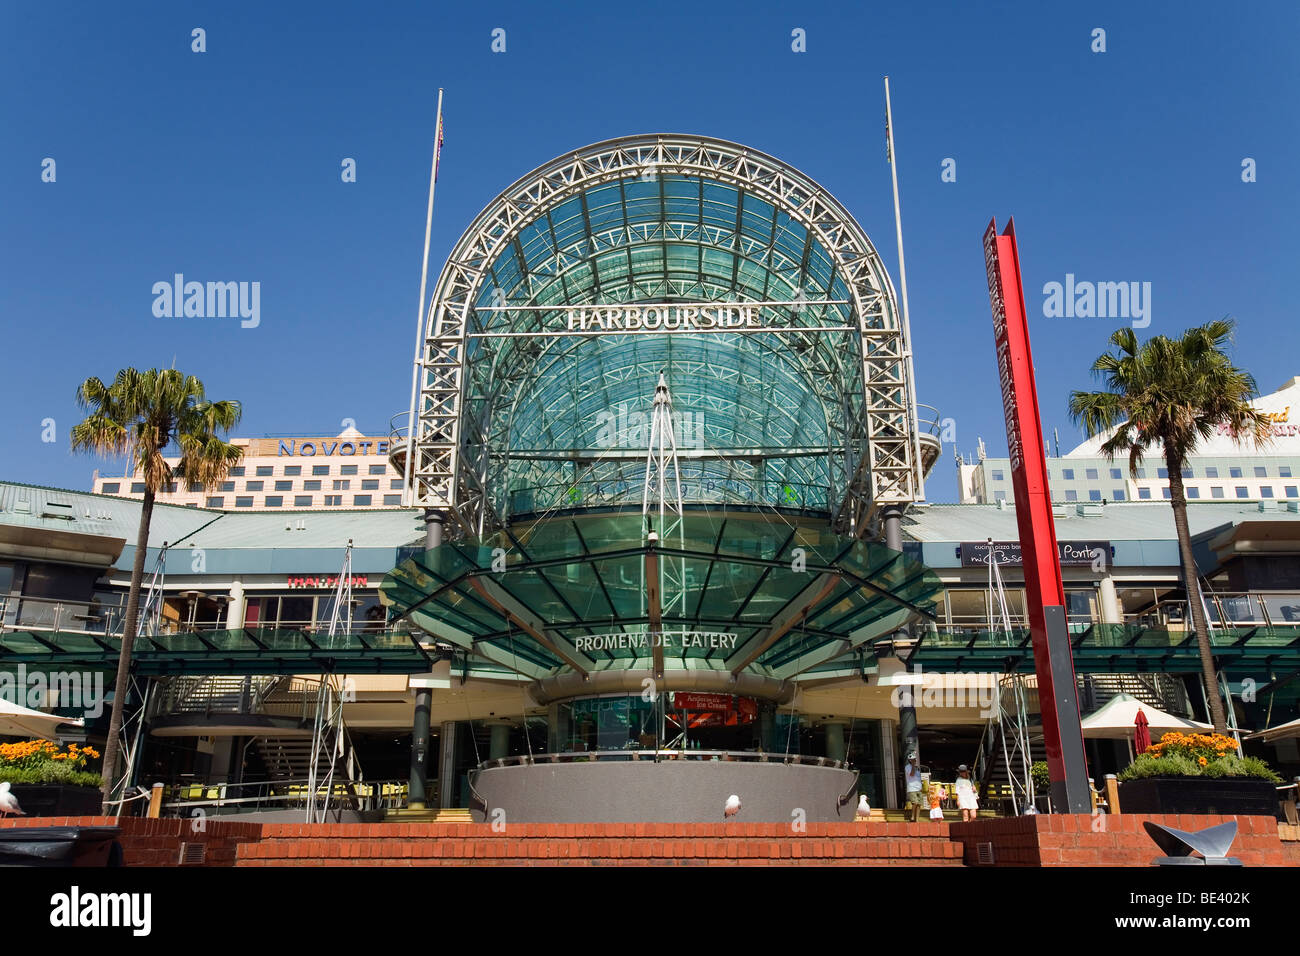 The Harbourside complex - a popular shopping district at Darling Harbour. Sydney, New South Wales, AUSTRALIA - Stock Image